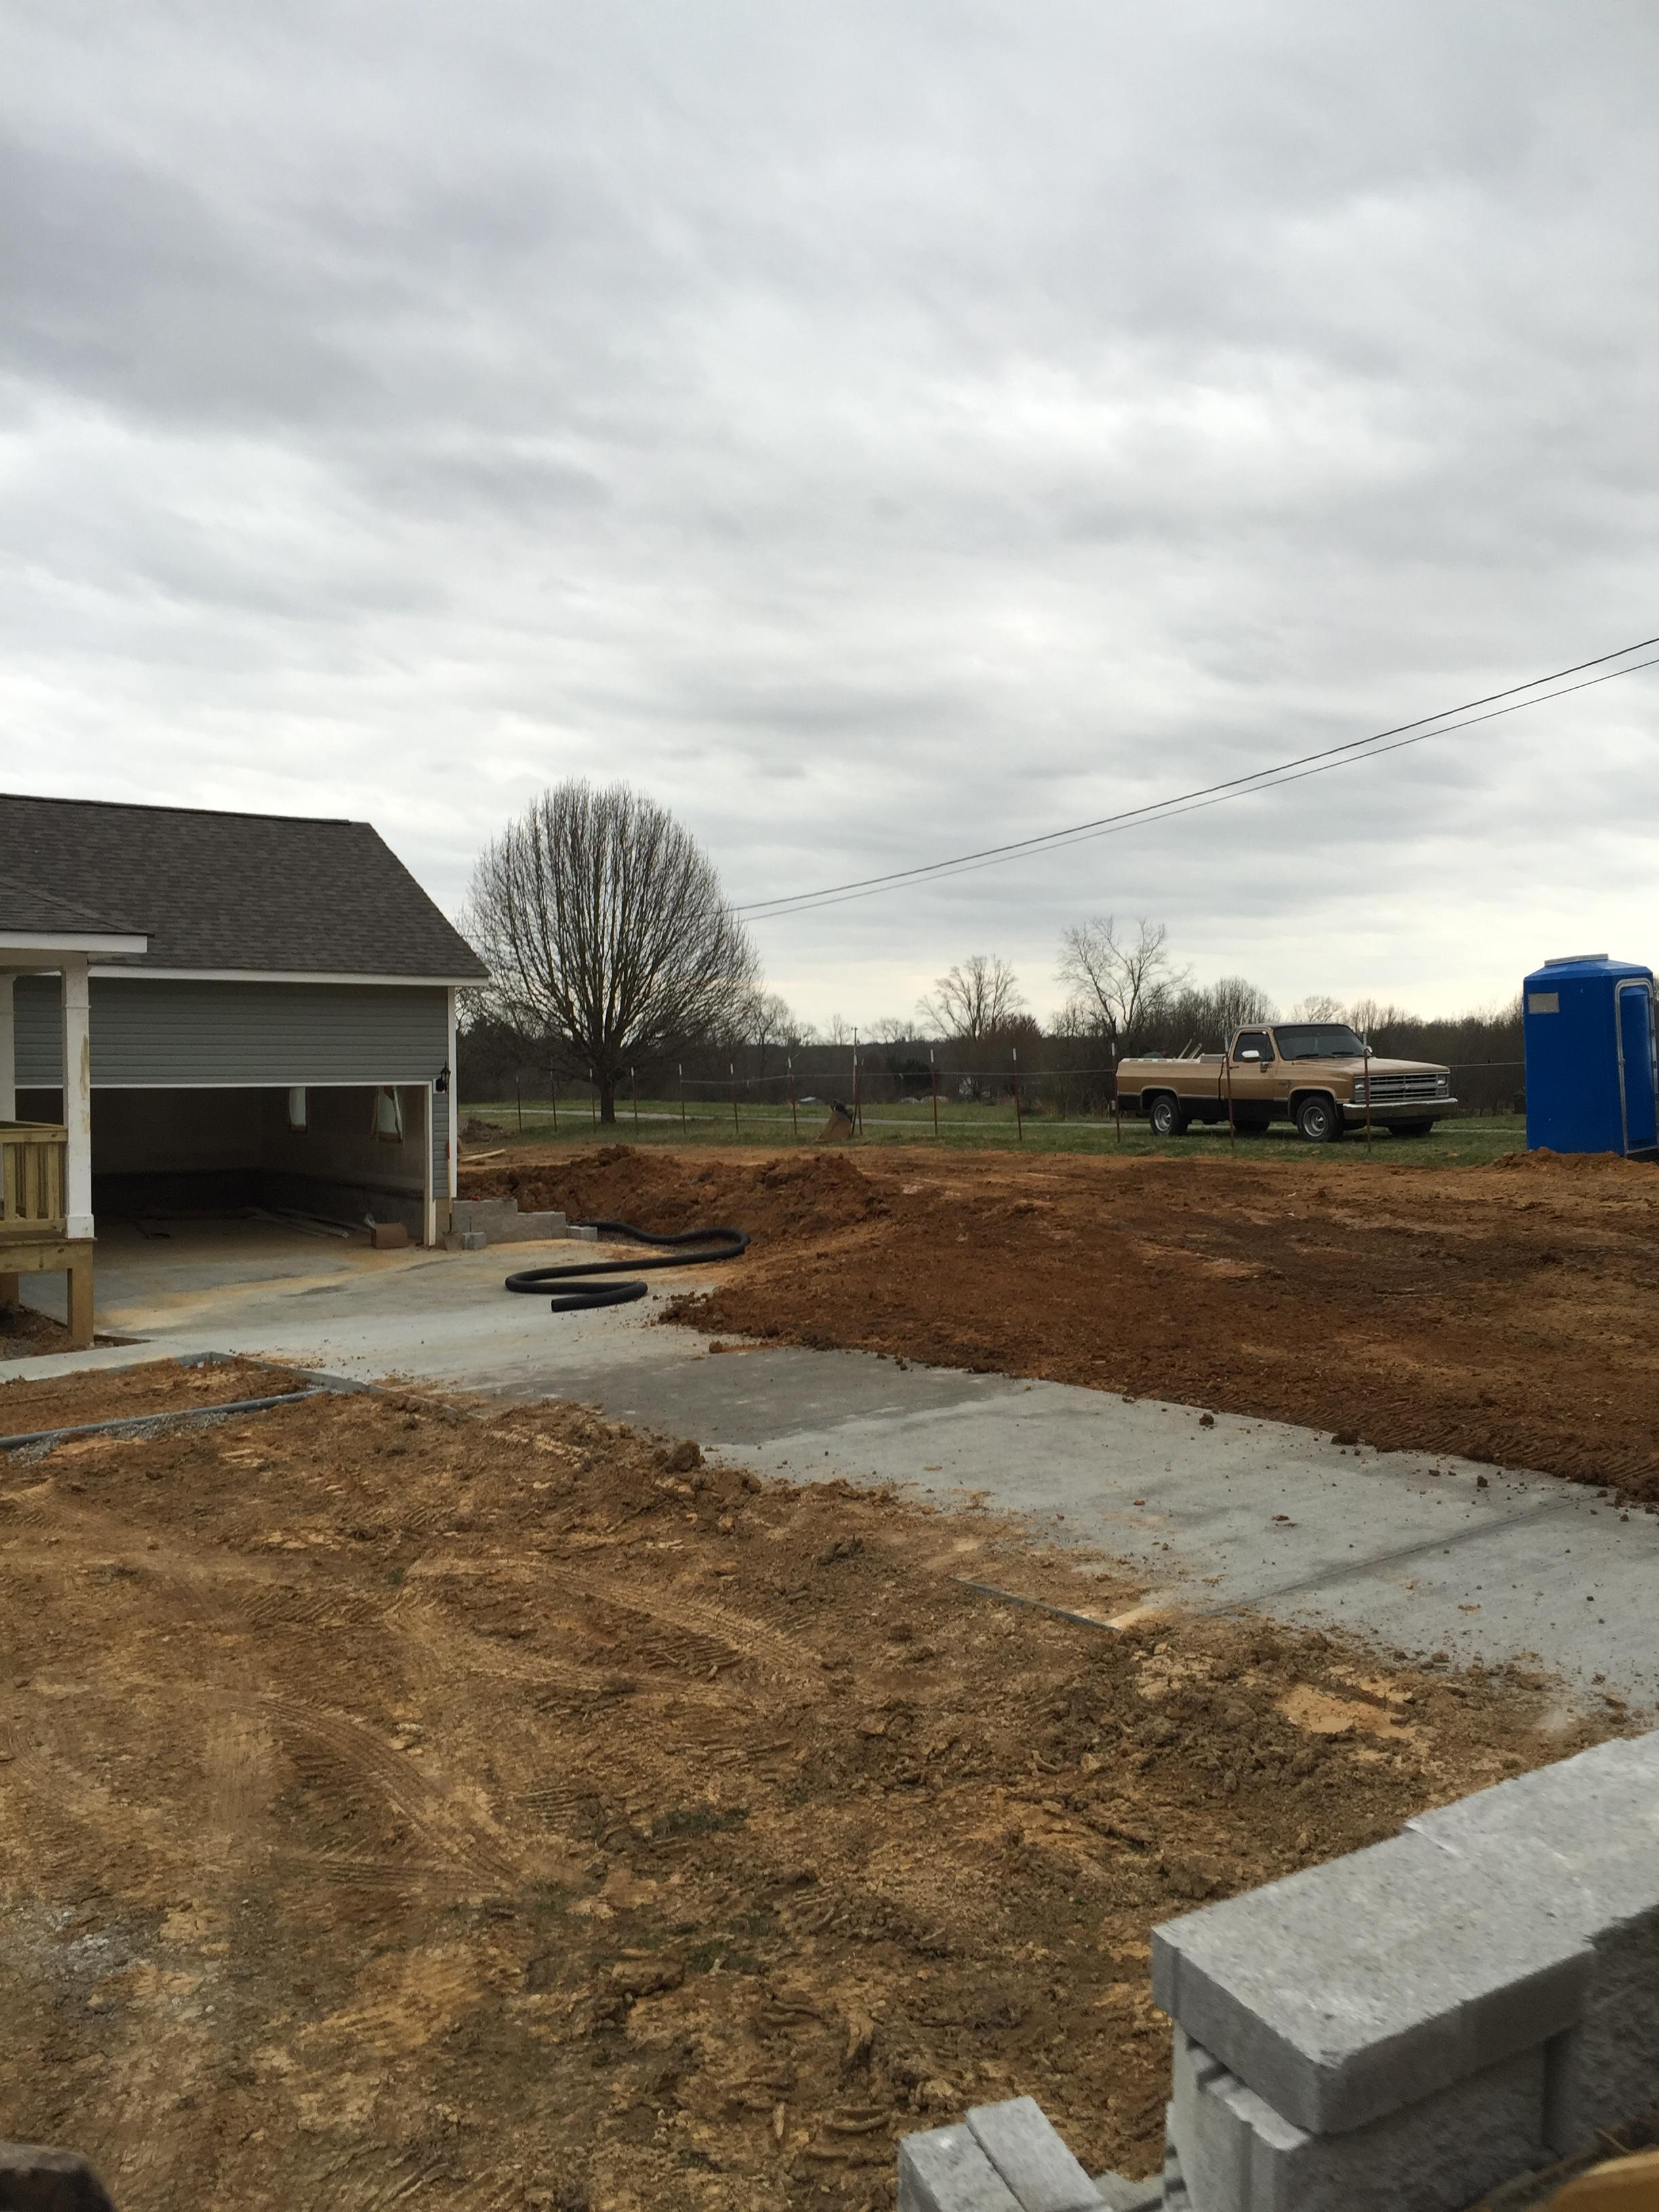 Three sons contracting in clarksville tn 37043 for New construction homes in clarksville tn